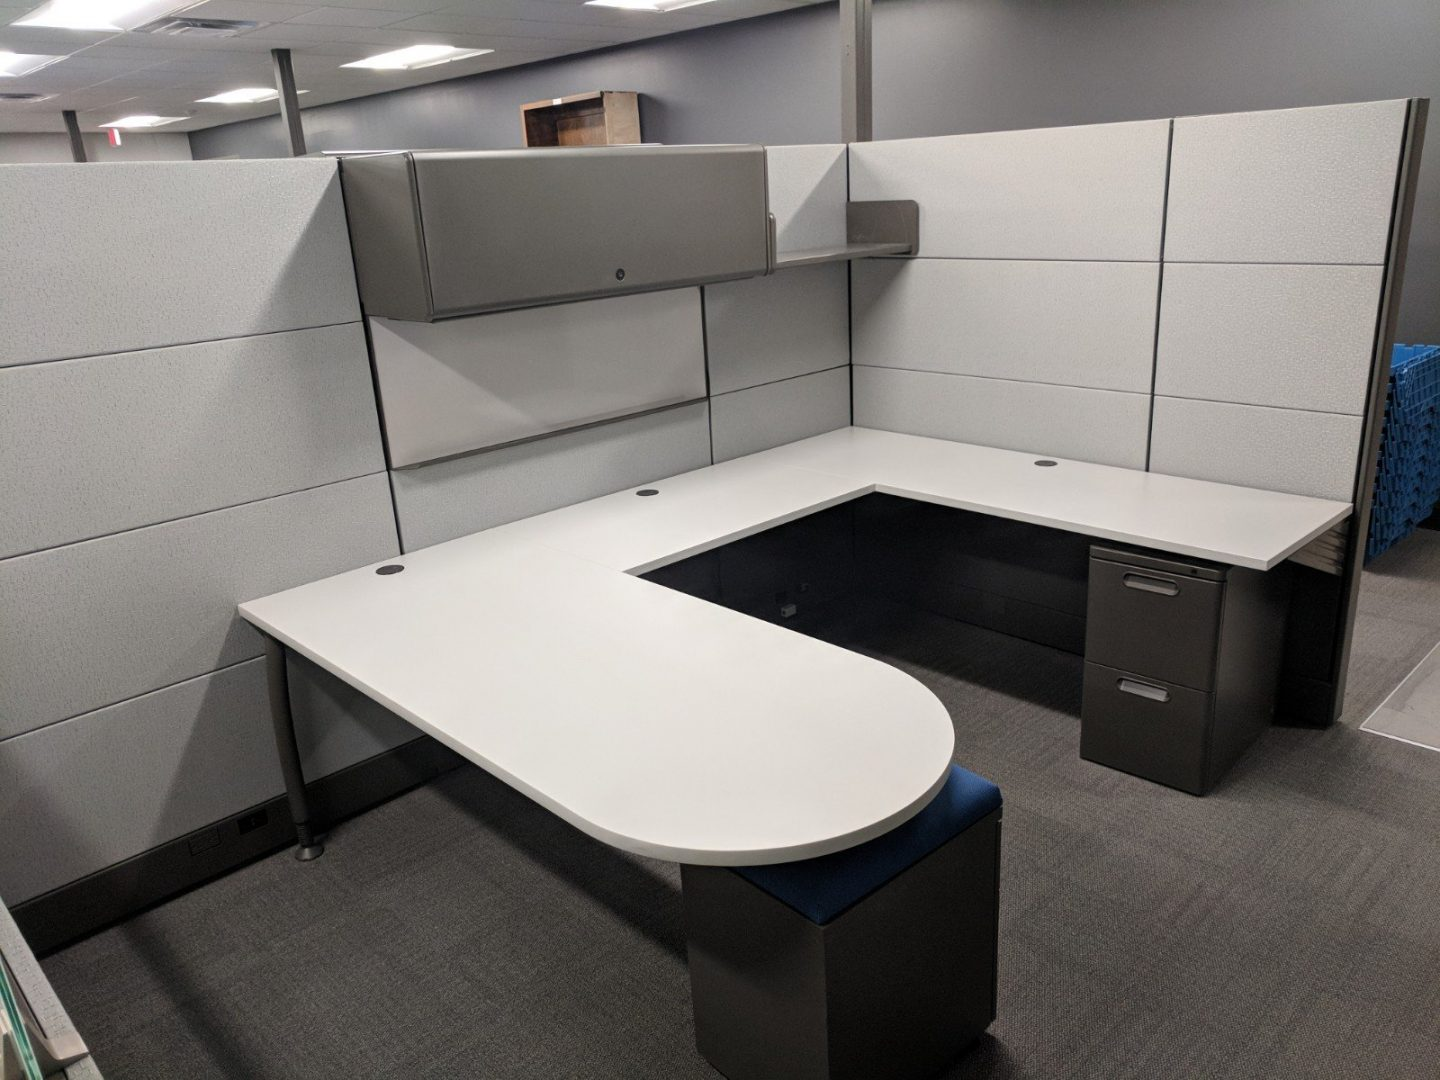 cubicle with a u-shaped desk